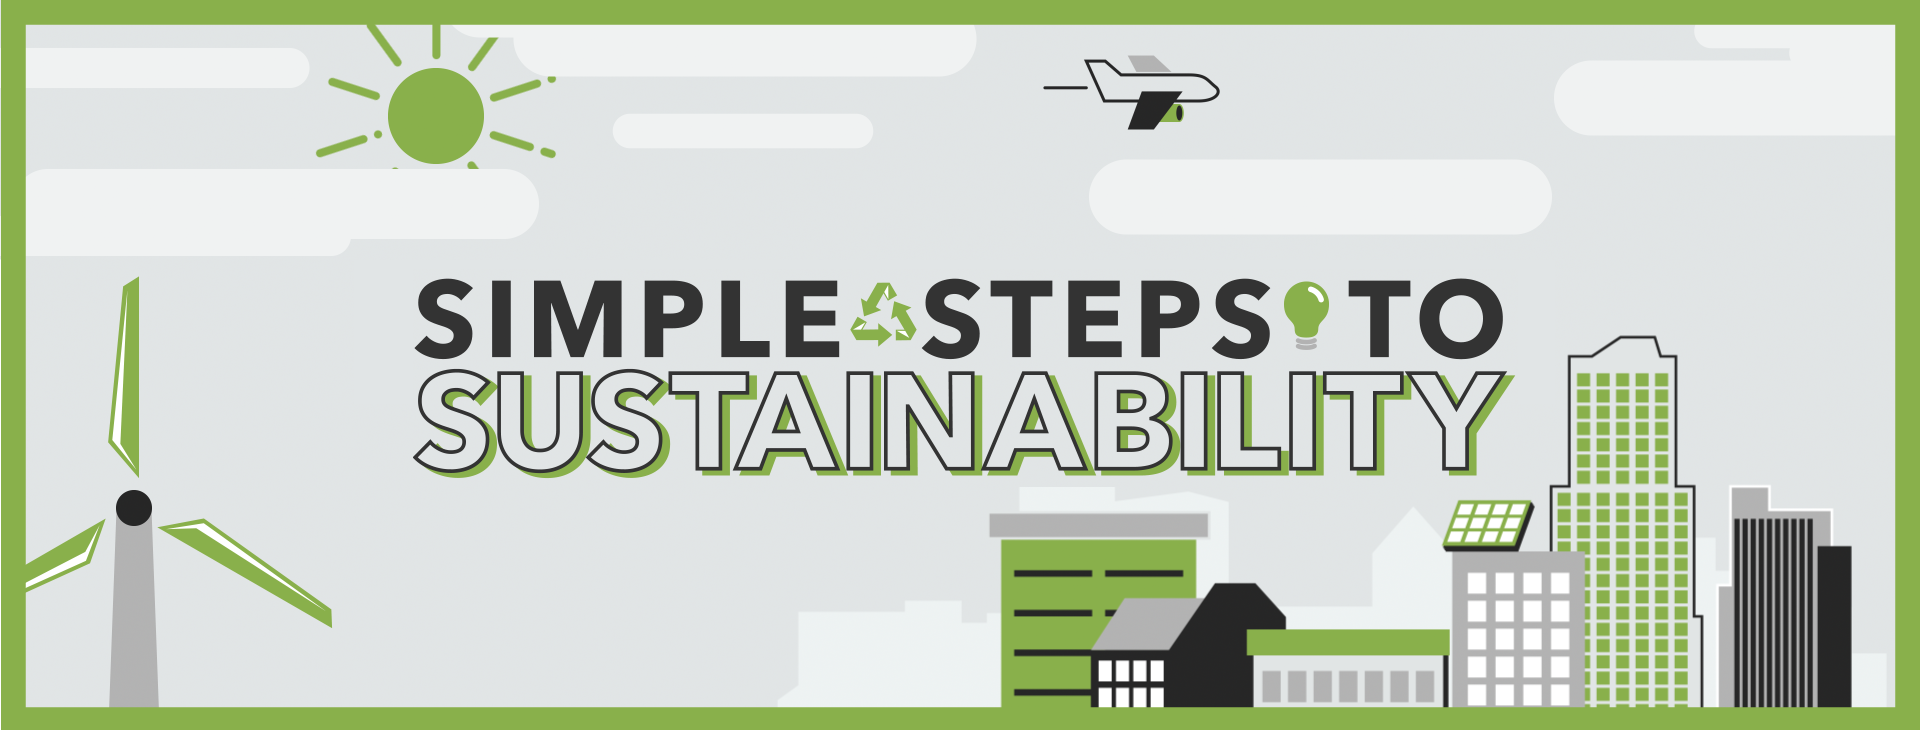 Simple Steps to Sustainability image